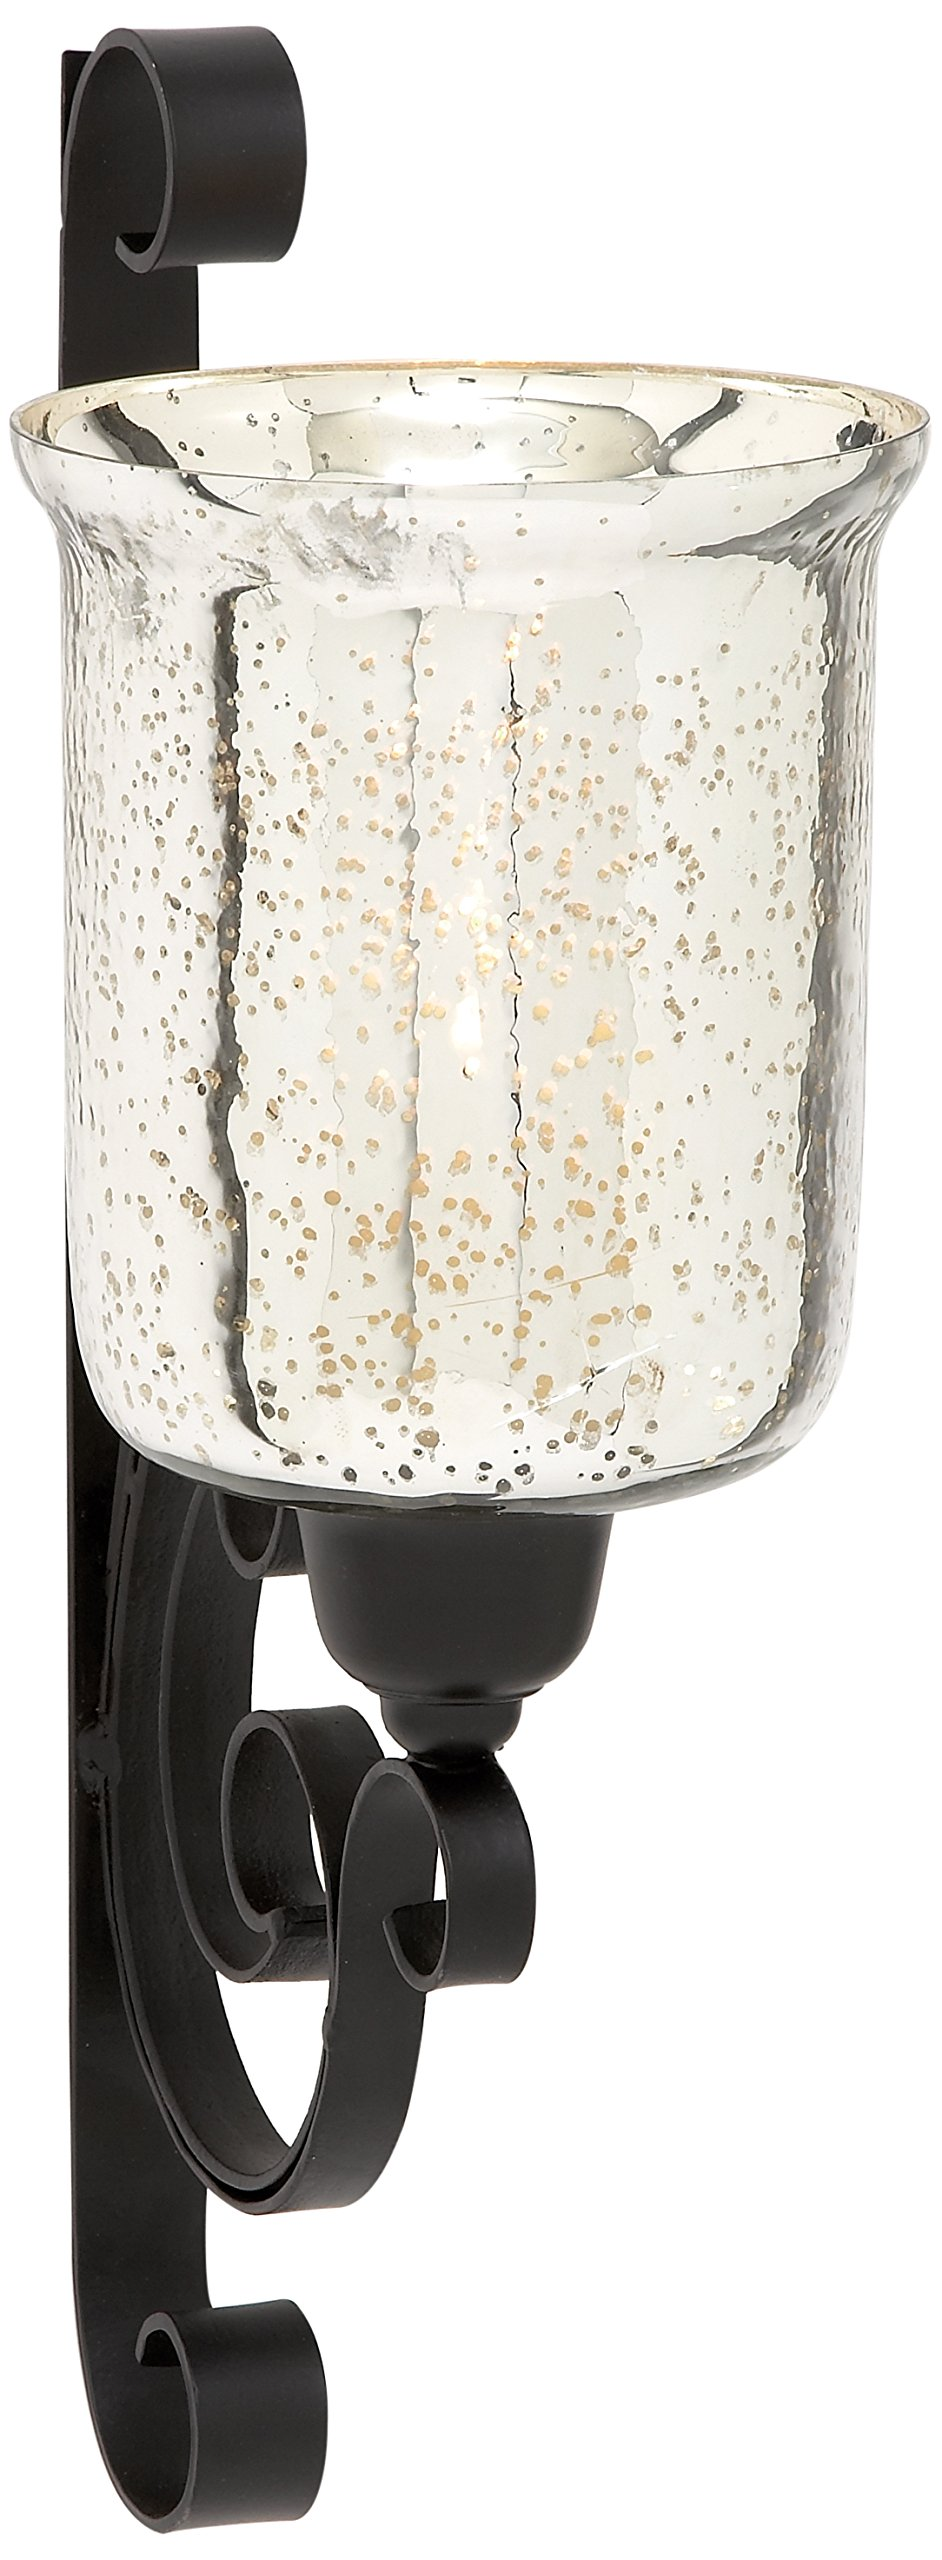 Deco 79 Traditional Scrolled Metal and Glass Candle Sconce, 20'' H x 11'' L, Polished Black and Silver